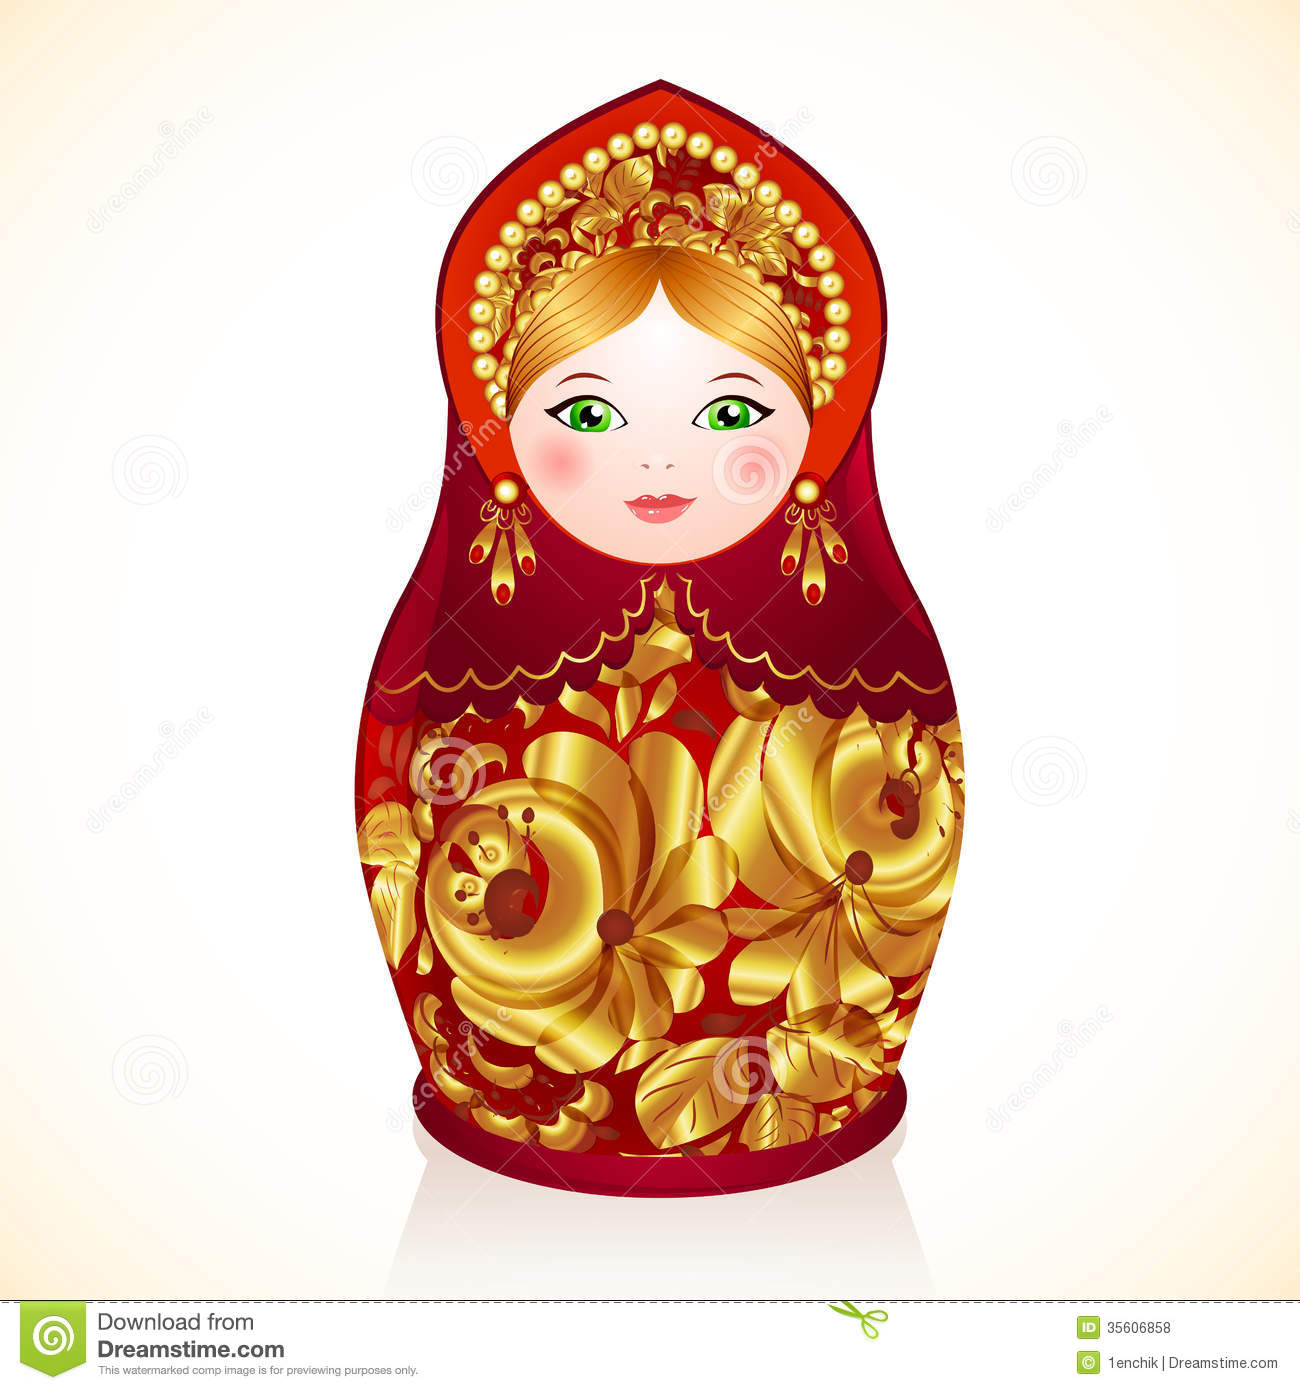 Rouge et poup e russe de couleurs d 39 or matryoshka photos for Poupee russe